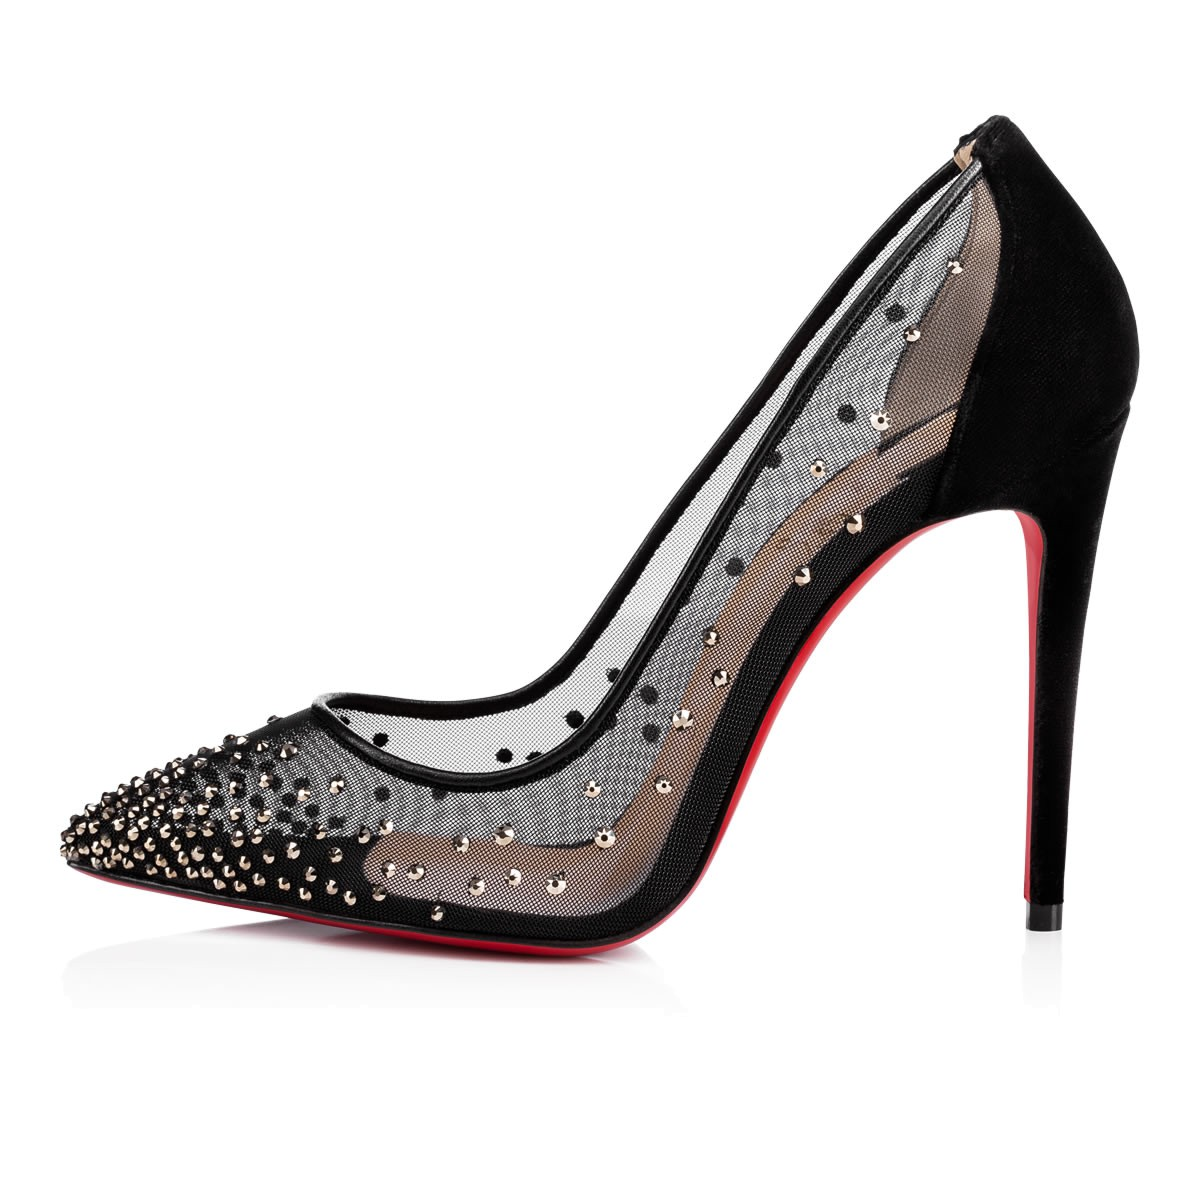 c5e9100bfd0e Follies Strass 100 Version Crystal Met Strass - Women Shoes ...